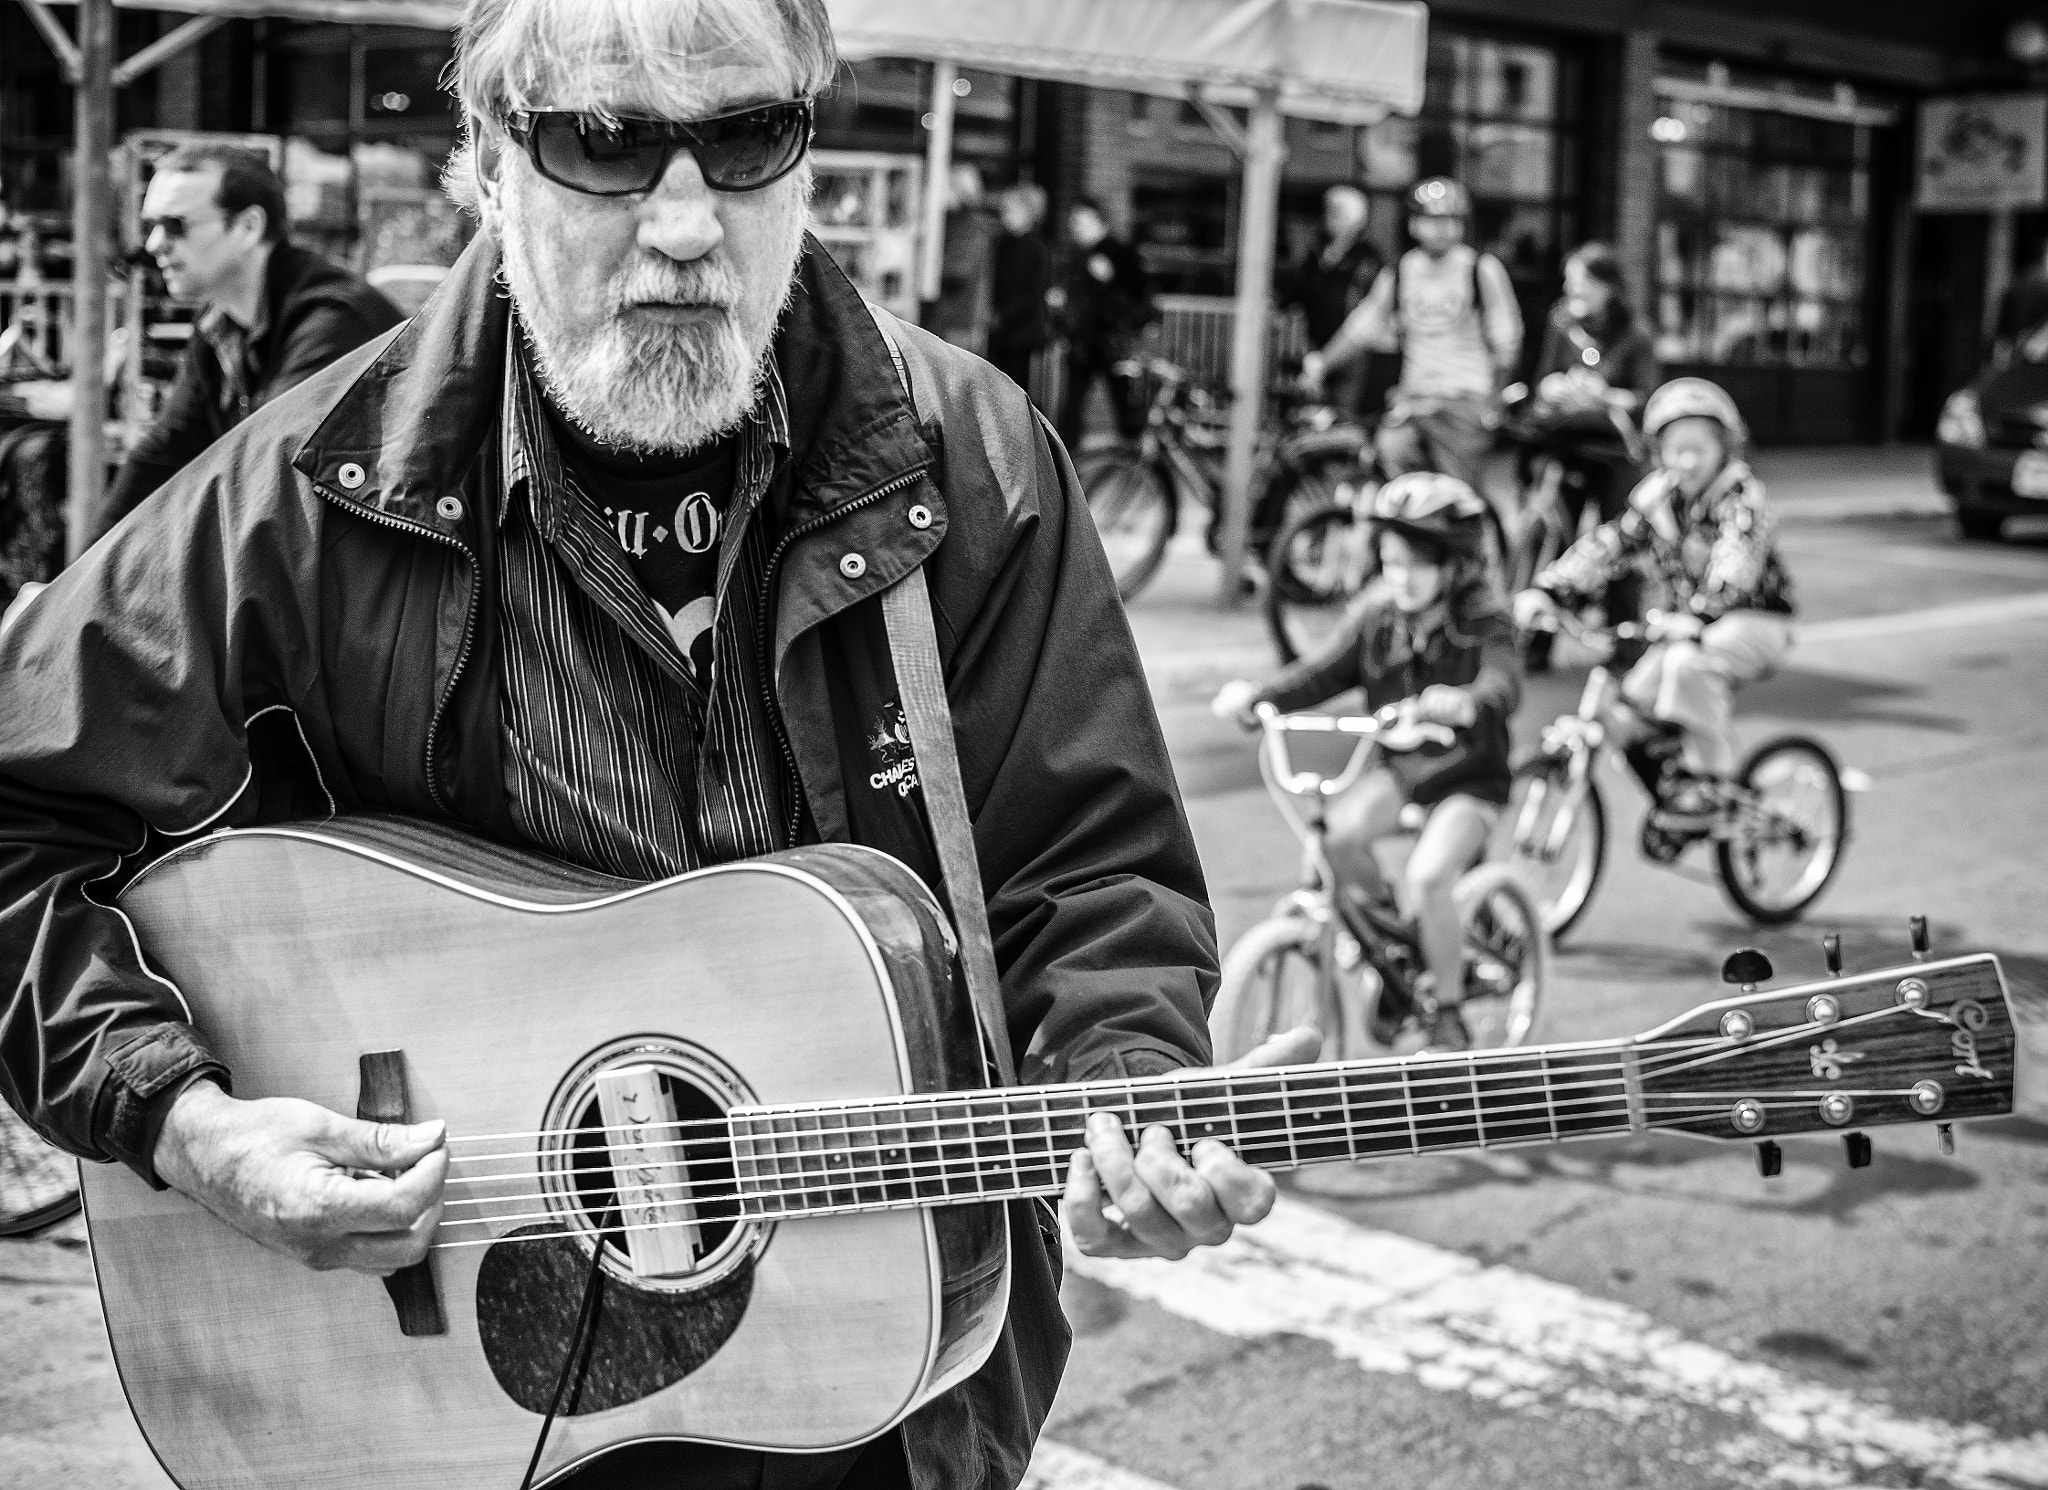 Photograph The Guitarist by Philip Rice on 500px